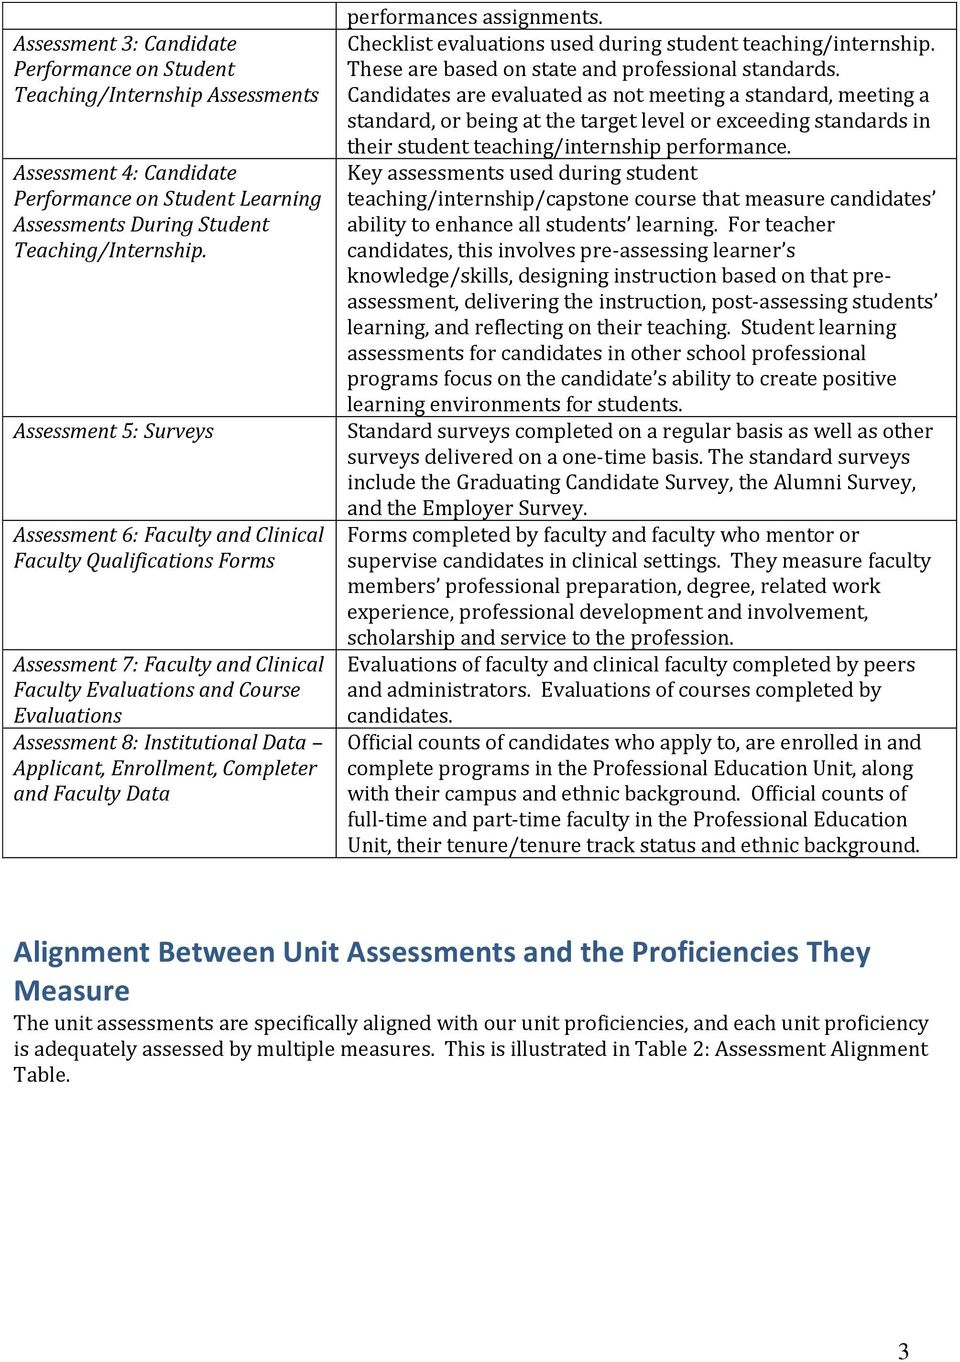 Applicant, Enrollment, Completer and Faculty Data performances assignments. Checklist evaluations used during student teaching/internship. These are based on state and professional standards.